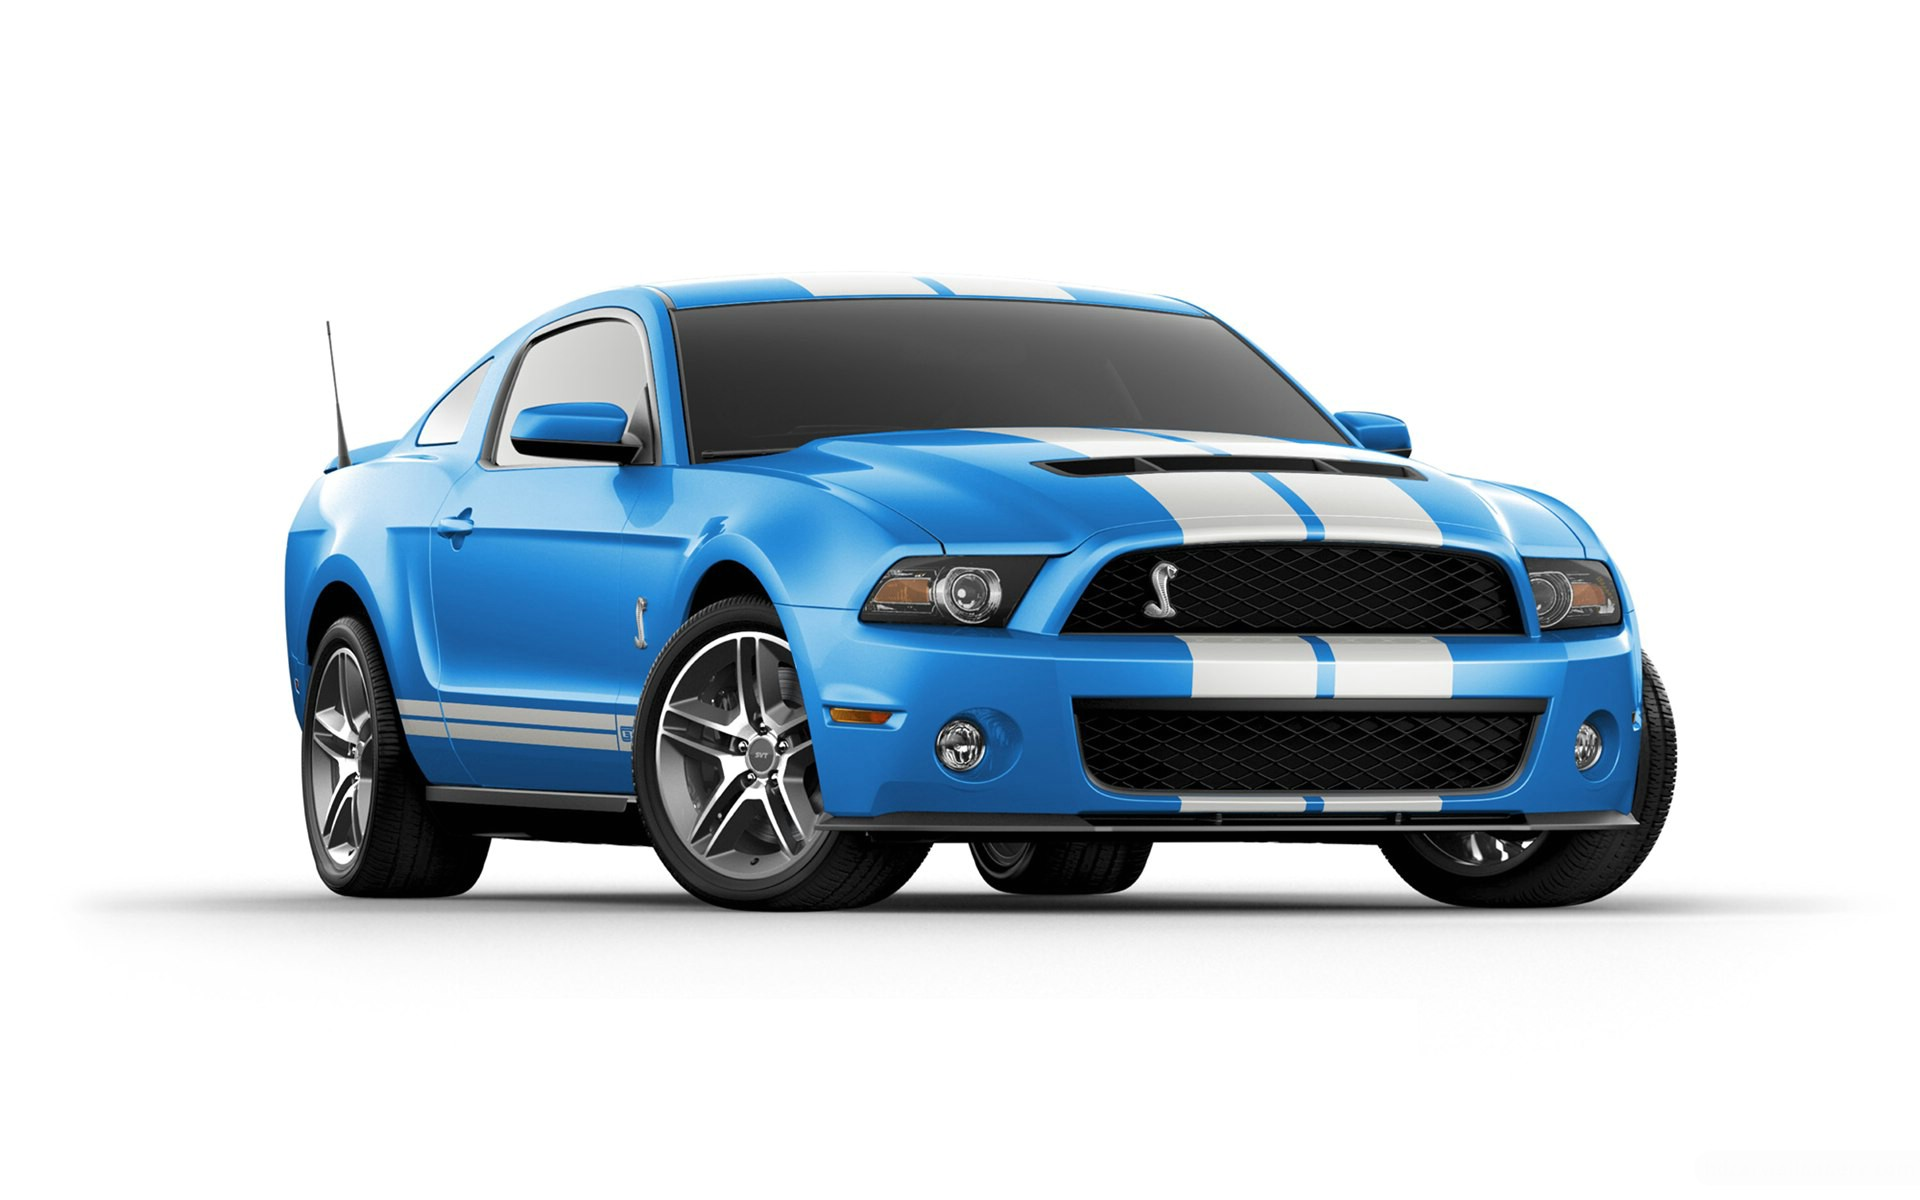 2012 ford shelby gt500 wallpaper hd car wallpapers id 2121. Black Bedroom Furniture Sets. Home Design Ideas